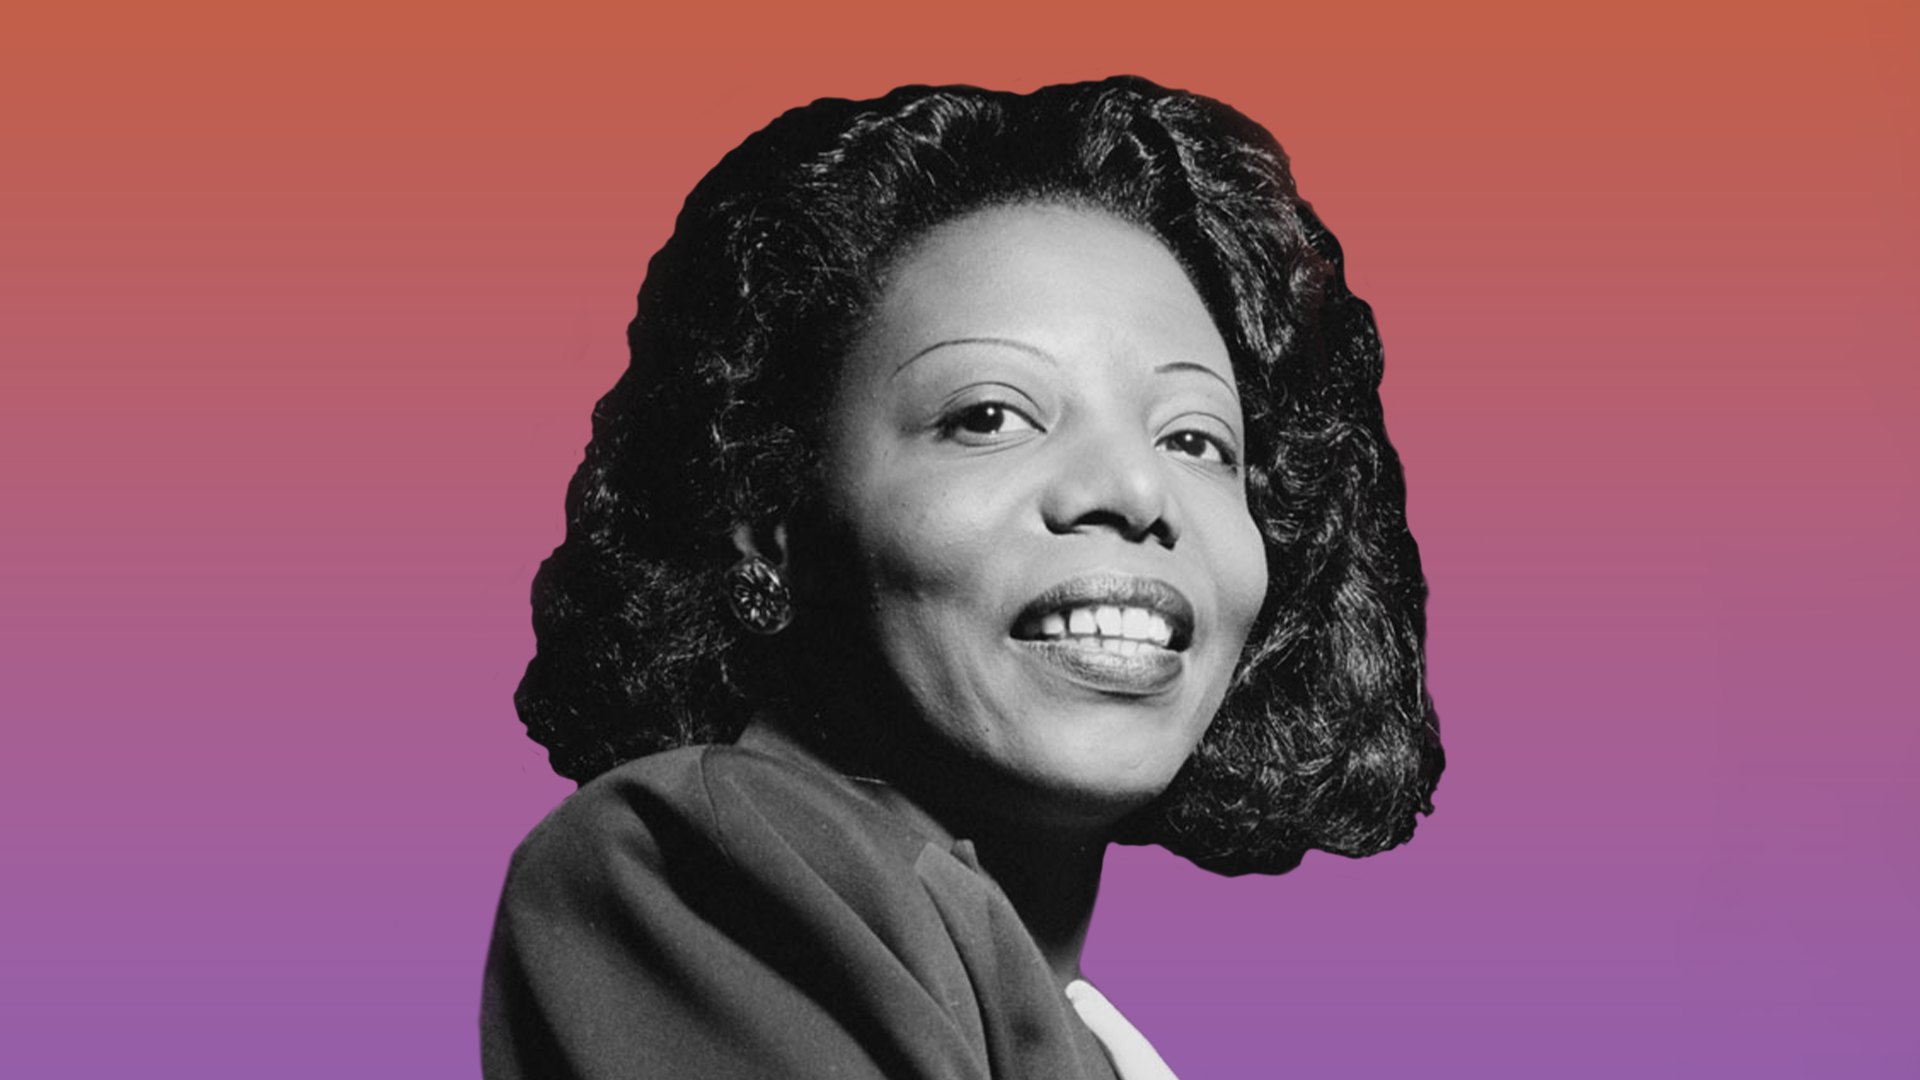 A black and white headshot photo of Mary Lou Williams on a pink gradient background